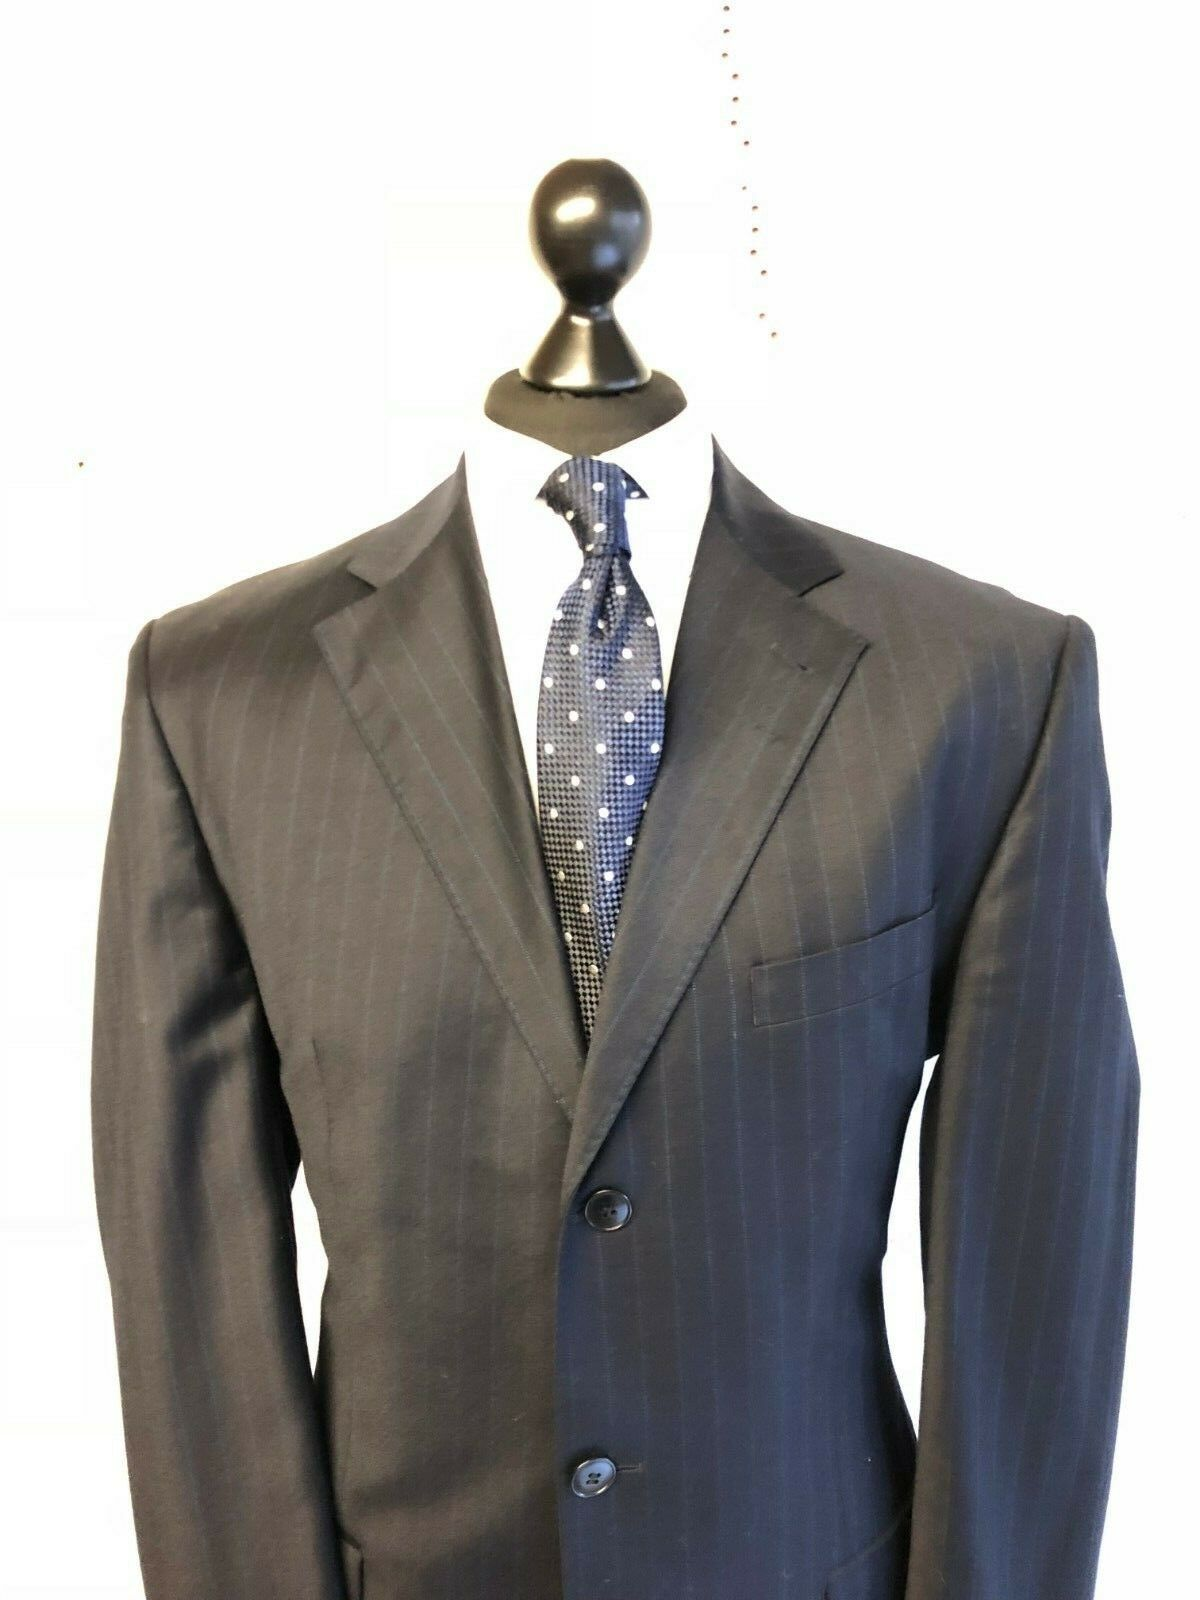 Tailored navy bluee pinstripe suit cashmere single breasted 2 piece suit 42L 36W